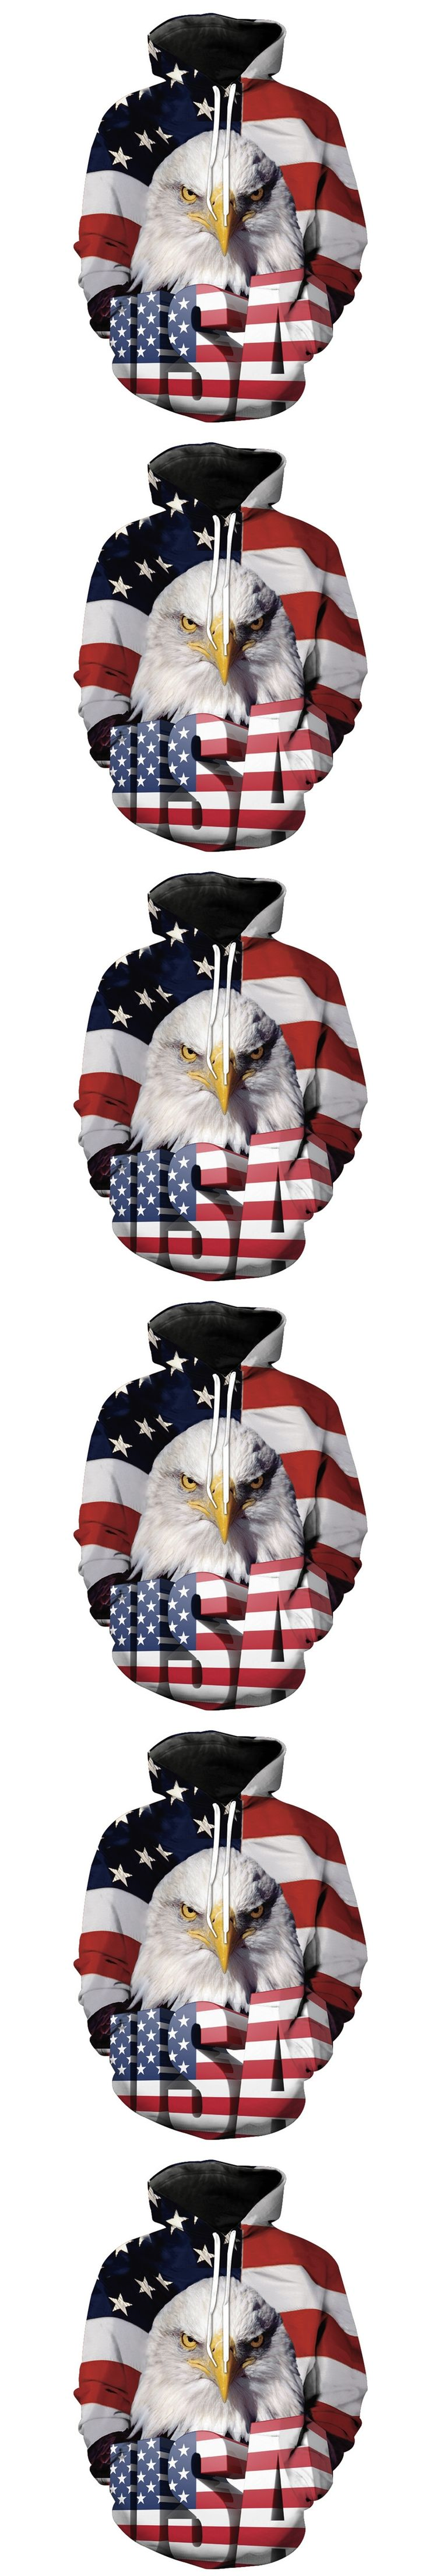 2017 NEW FASHION MEN AND WOMEN US flag Eagle HOODIE 3D Hoodie Sweatshirts Pullovers Autumn Tracksuit Winter Loose Thin Hoody